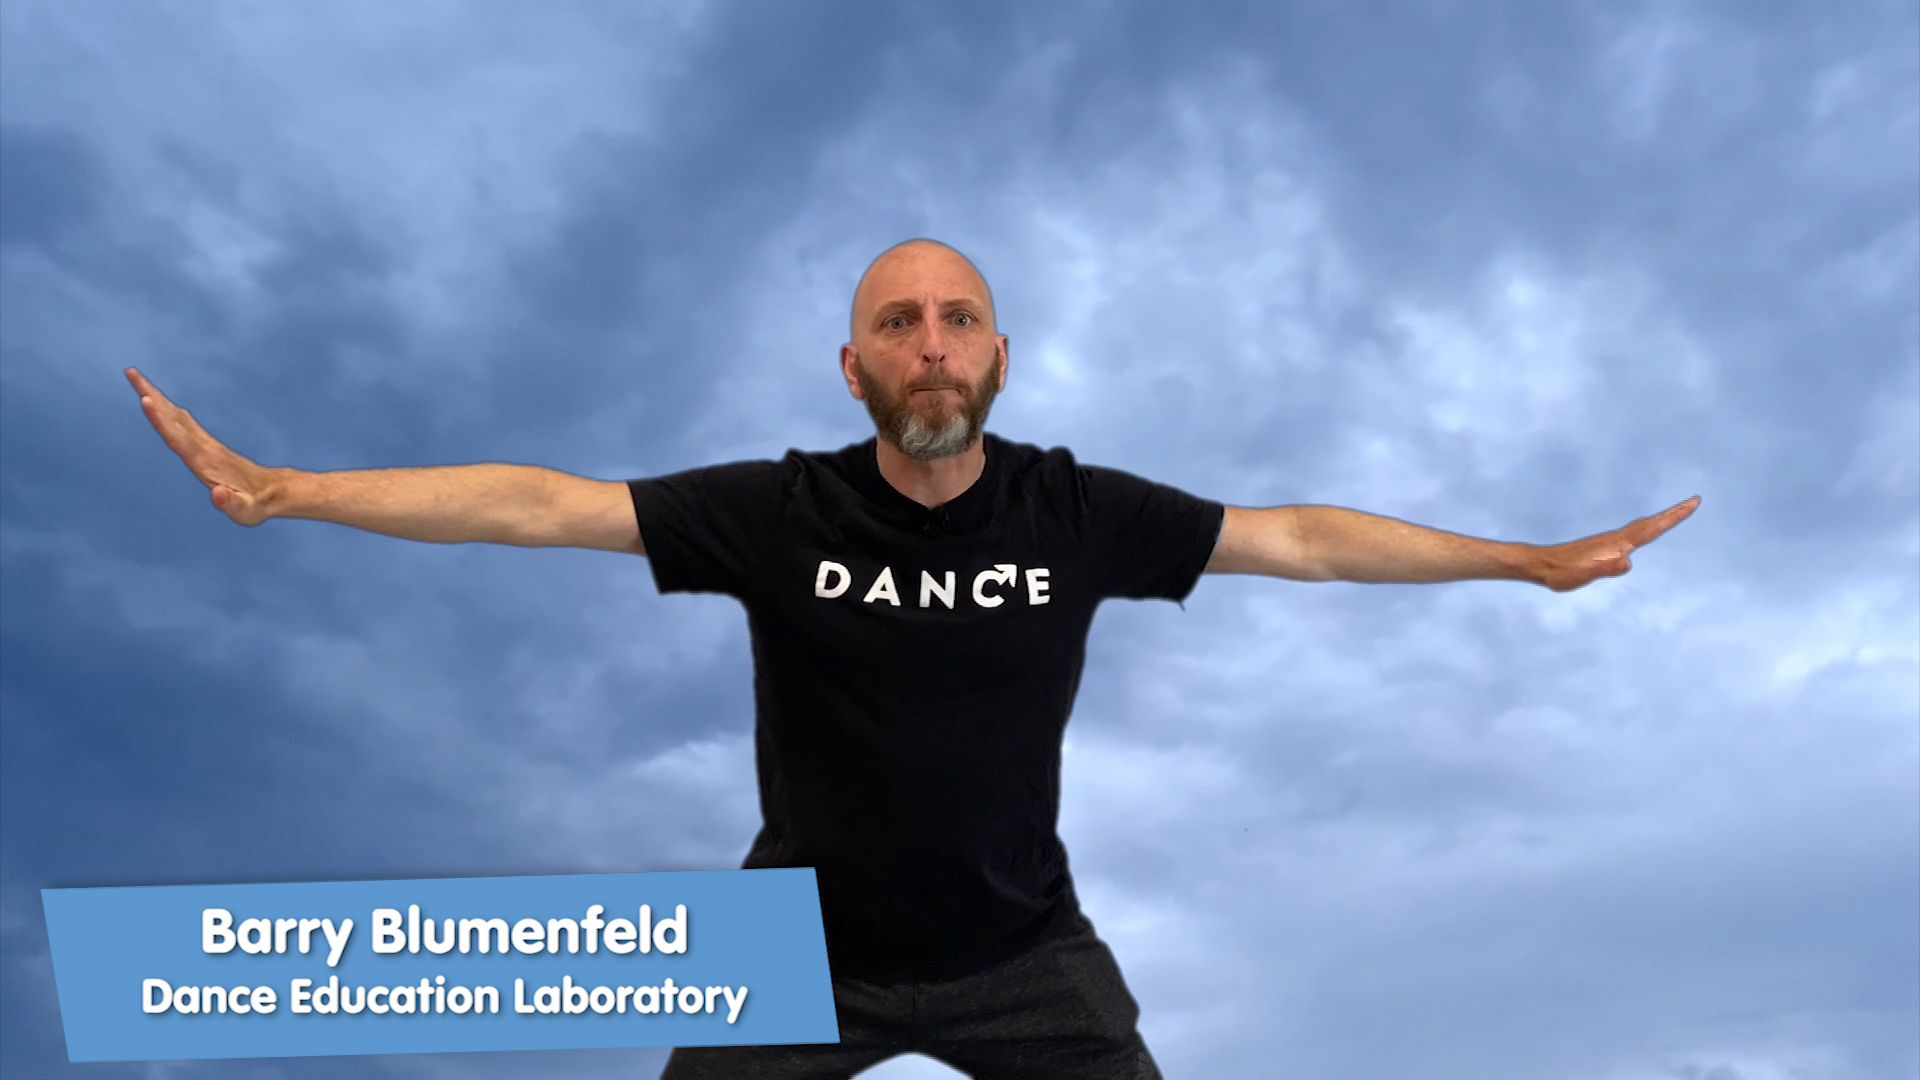 A thin bald man with a beard wears a black t-shirt that says DANCE and holds his arms out like a plane. He squats a little bit.